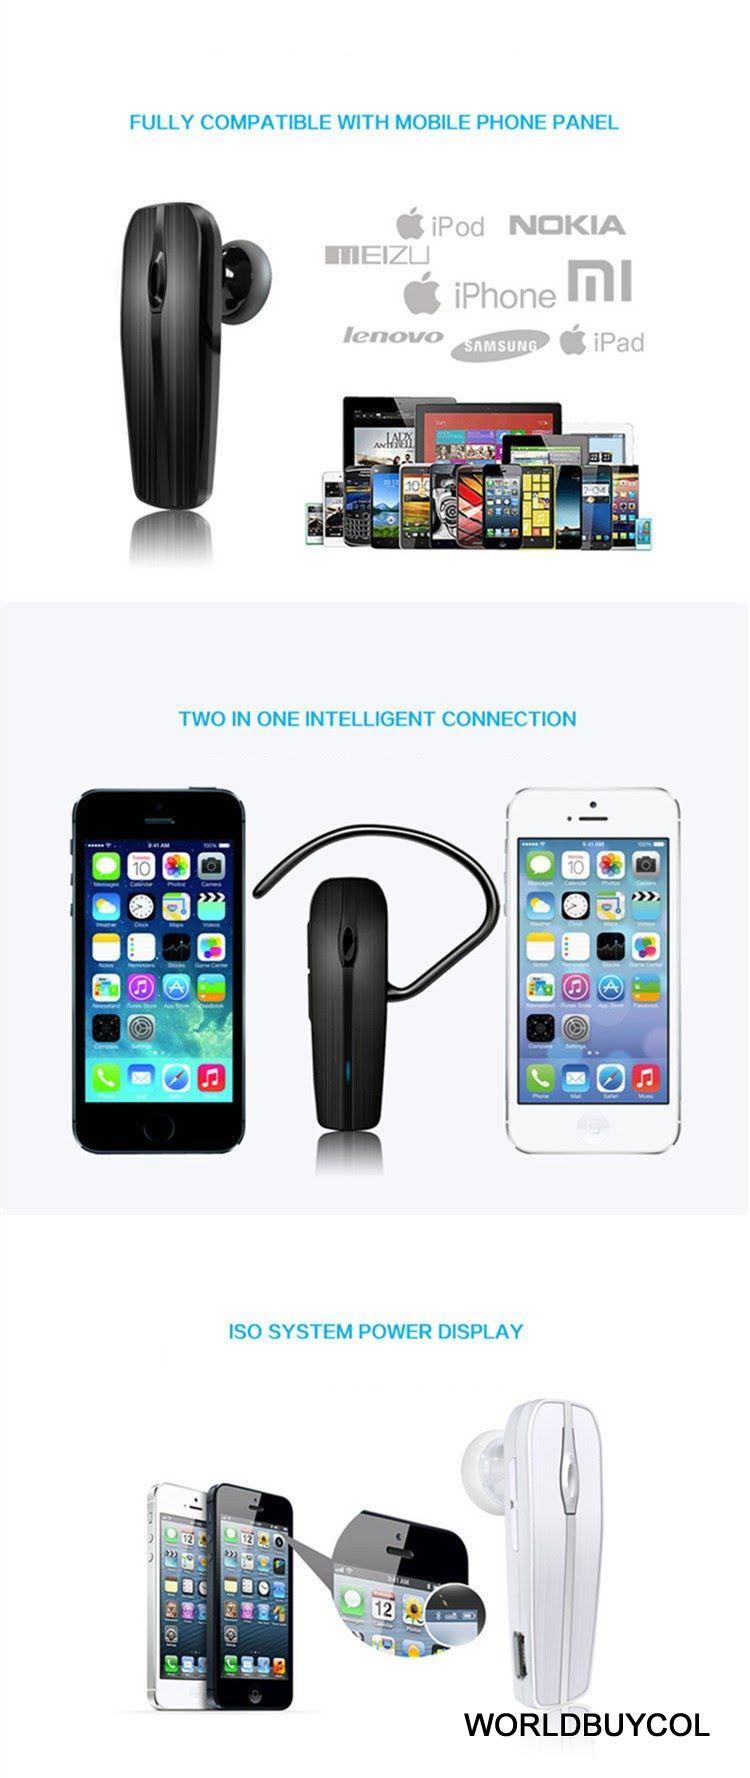 manos libres bluetooth musica iphone android pc tablet Smartphones HTC Mini HTC Mini- Review Properties